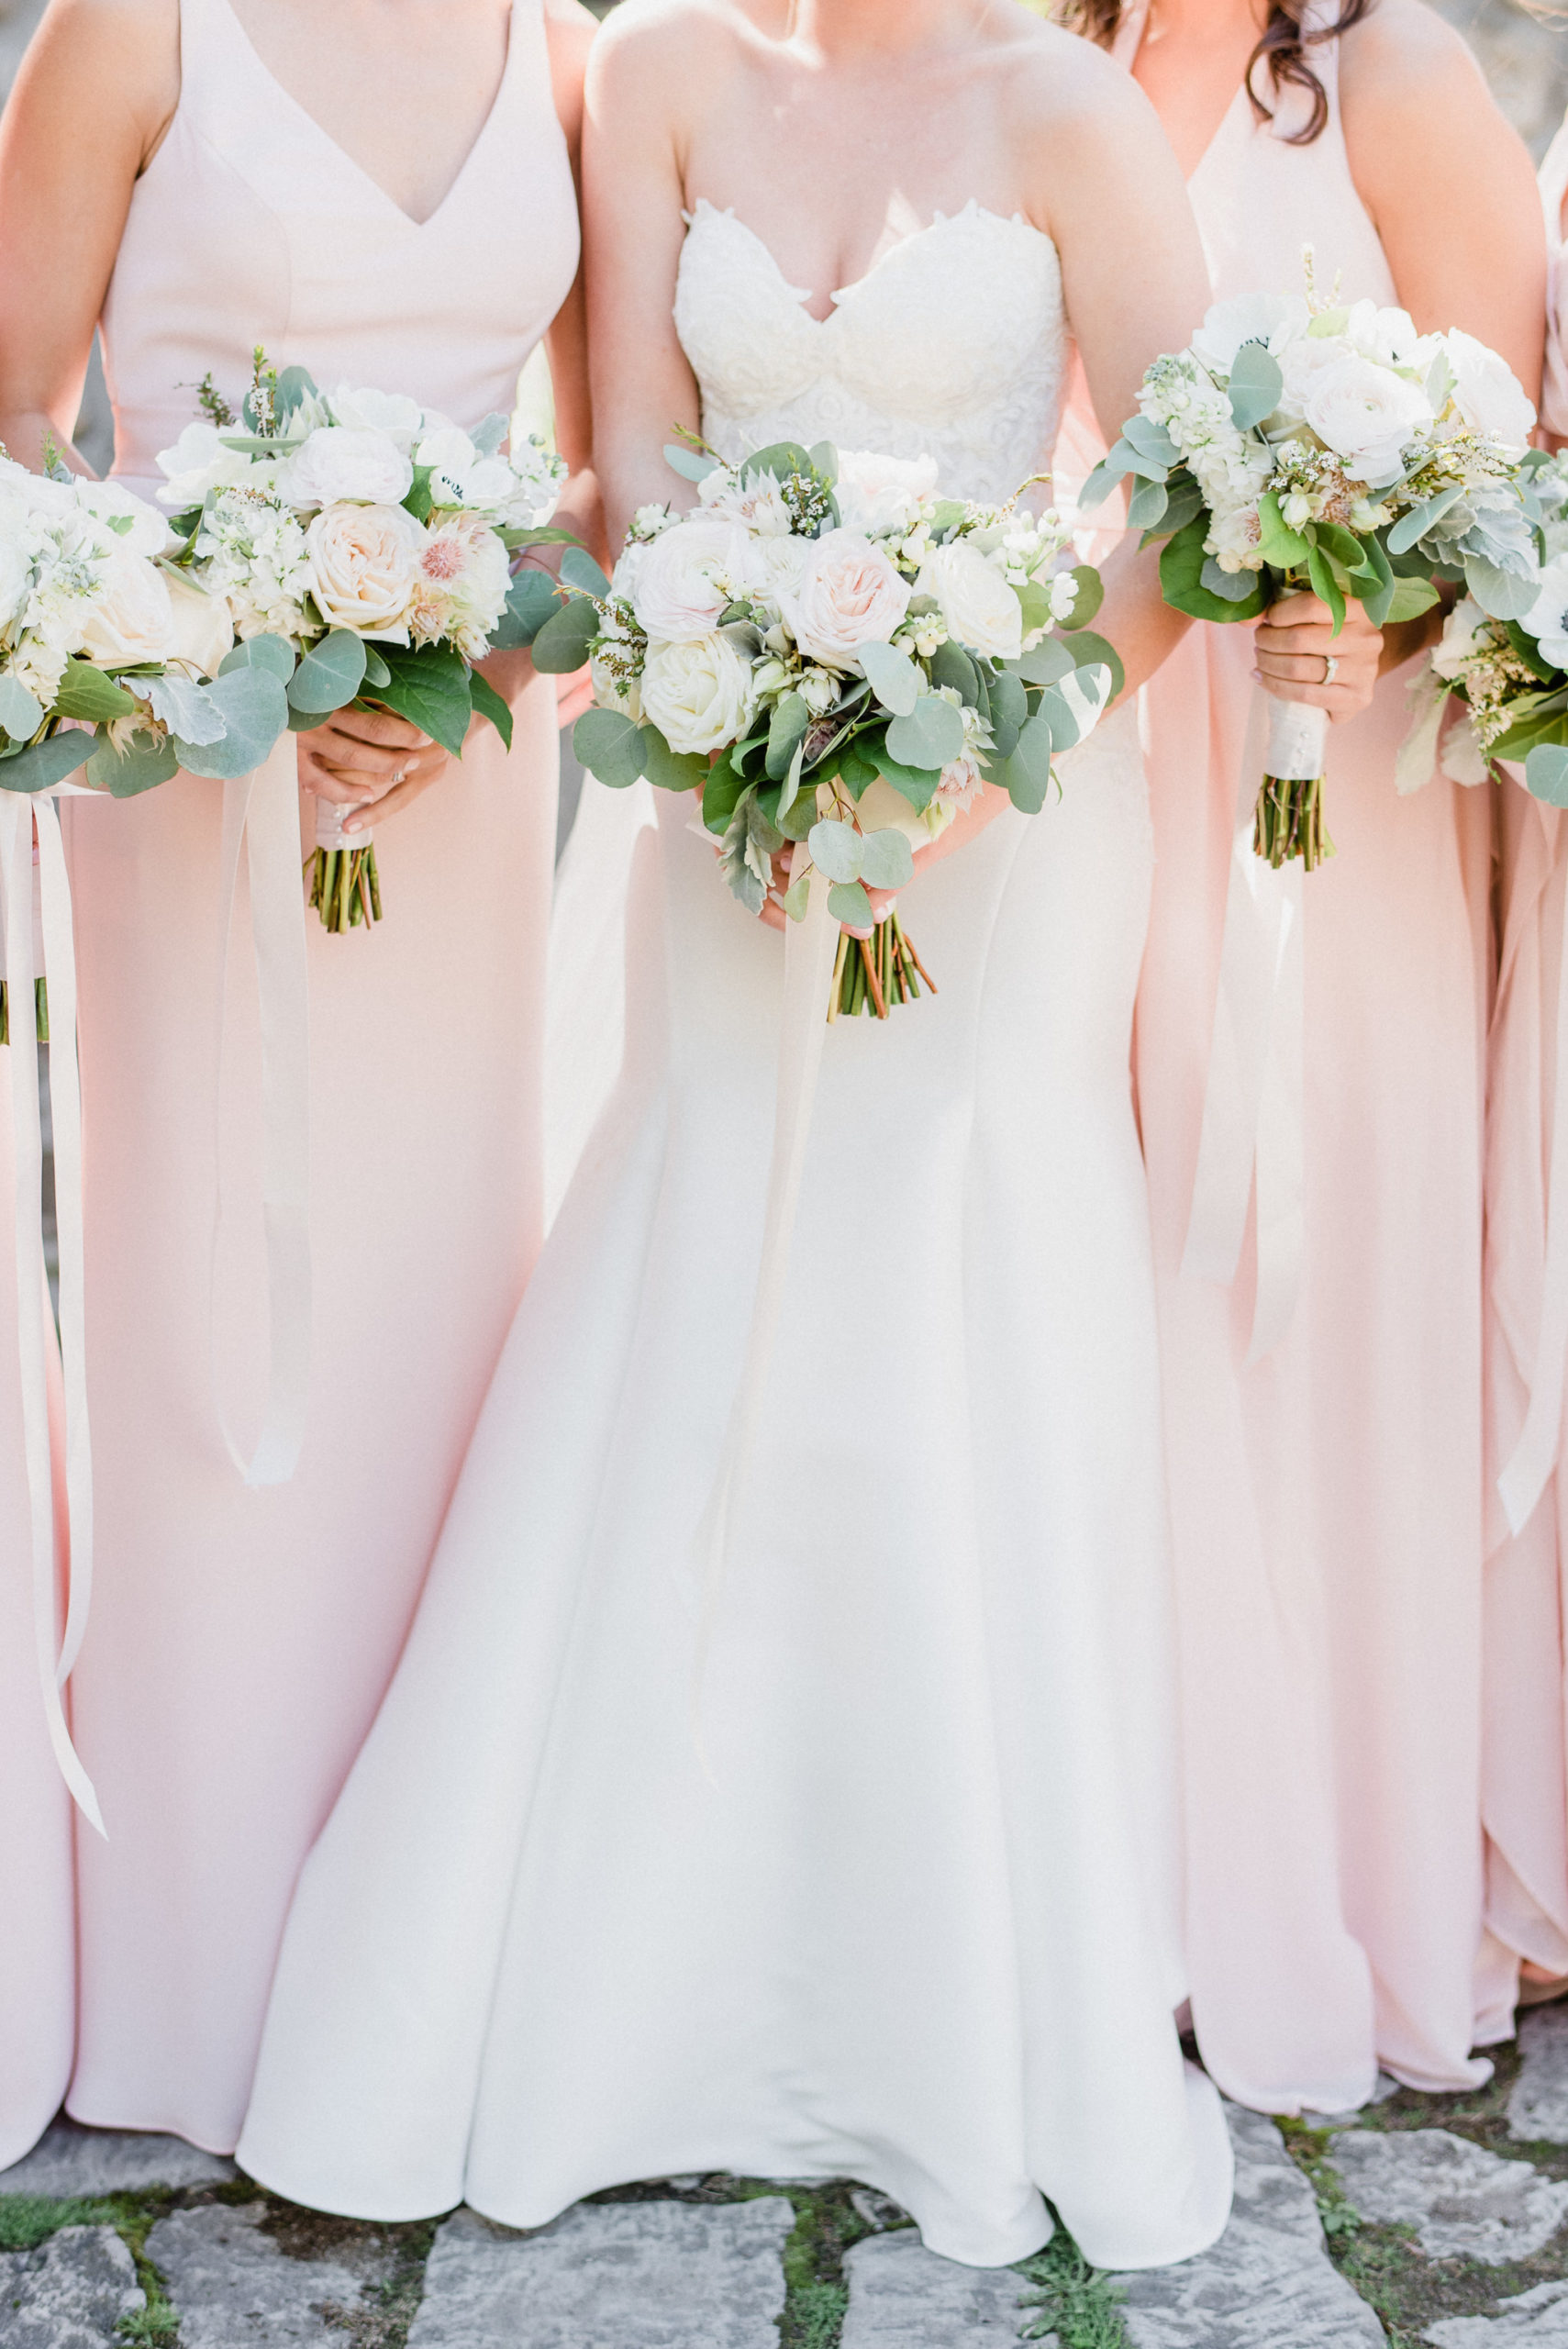 Blush pink bridesmaids photographed by Hamilton Wedding Photographer, Jenn Kavanagh Photography